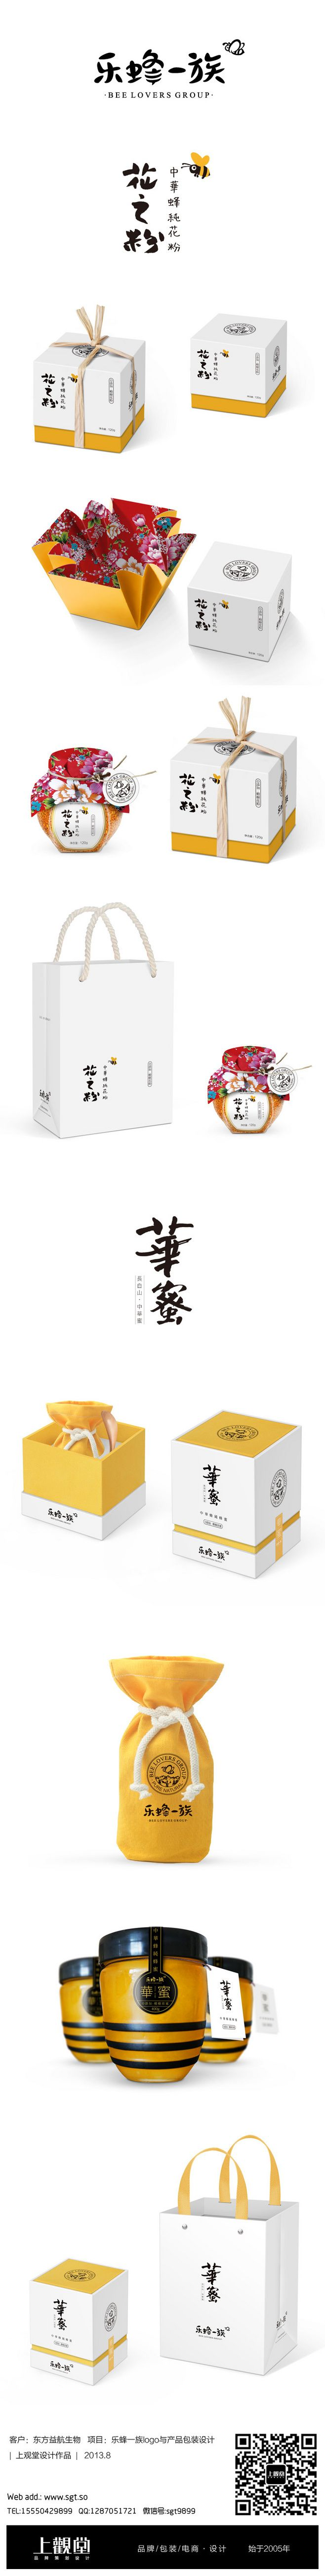 〓上观堂设计案例〓乐蜂一族蜂蜜logo与... Bee lovers group in great packaging PD